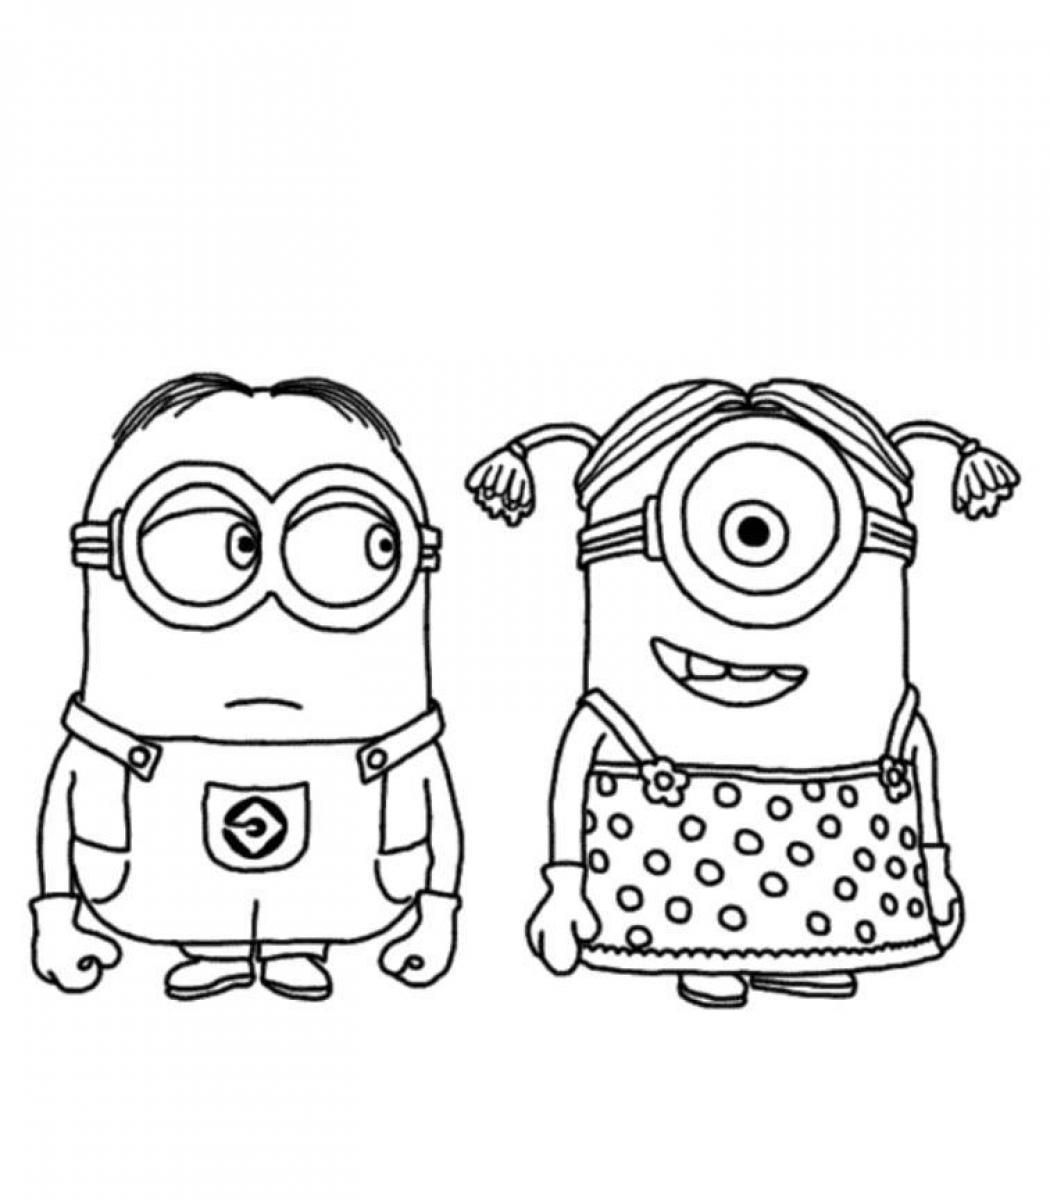 minion coloring pages printable minion coloring pages free minion coloring pages online minion - Minion Coloring Pages